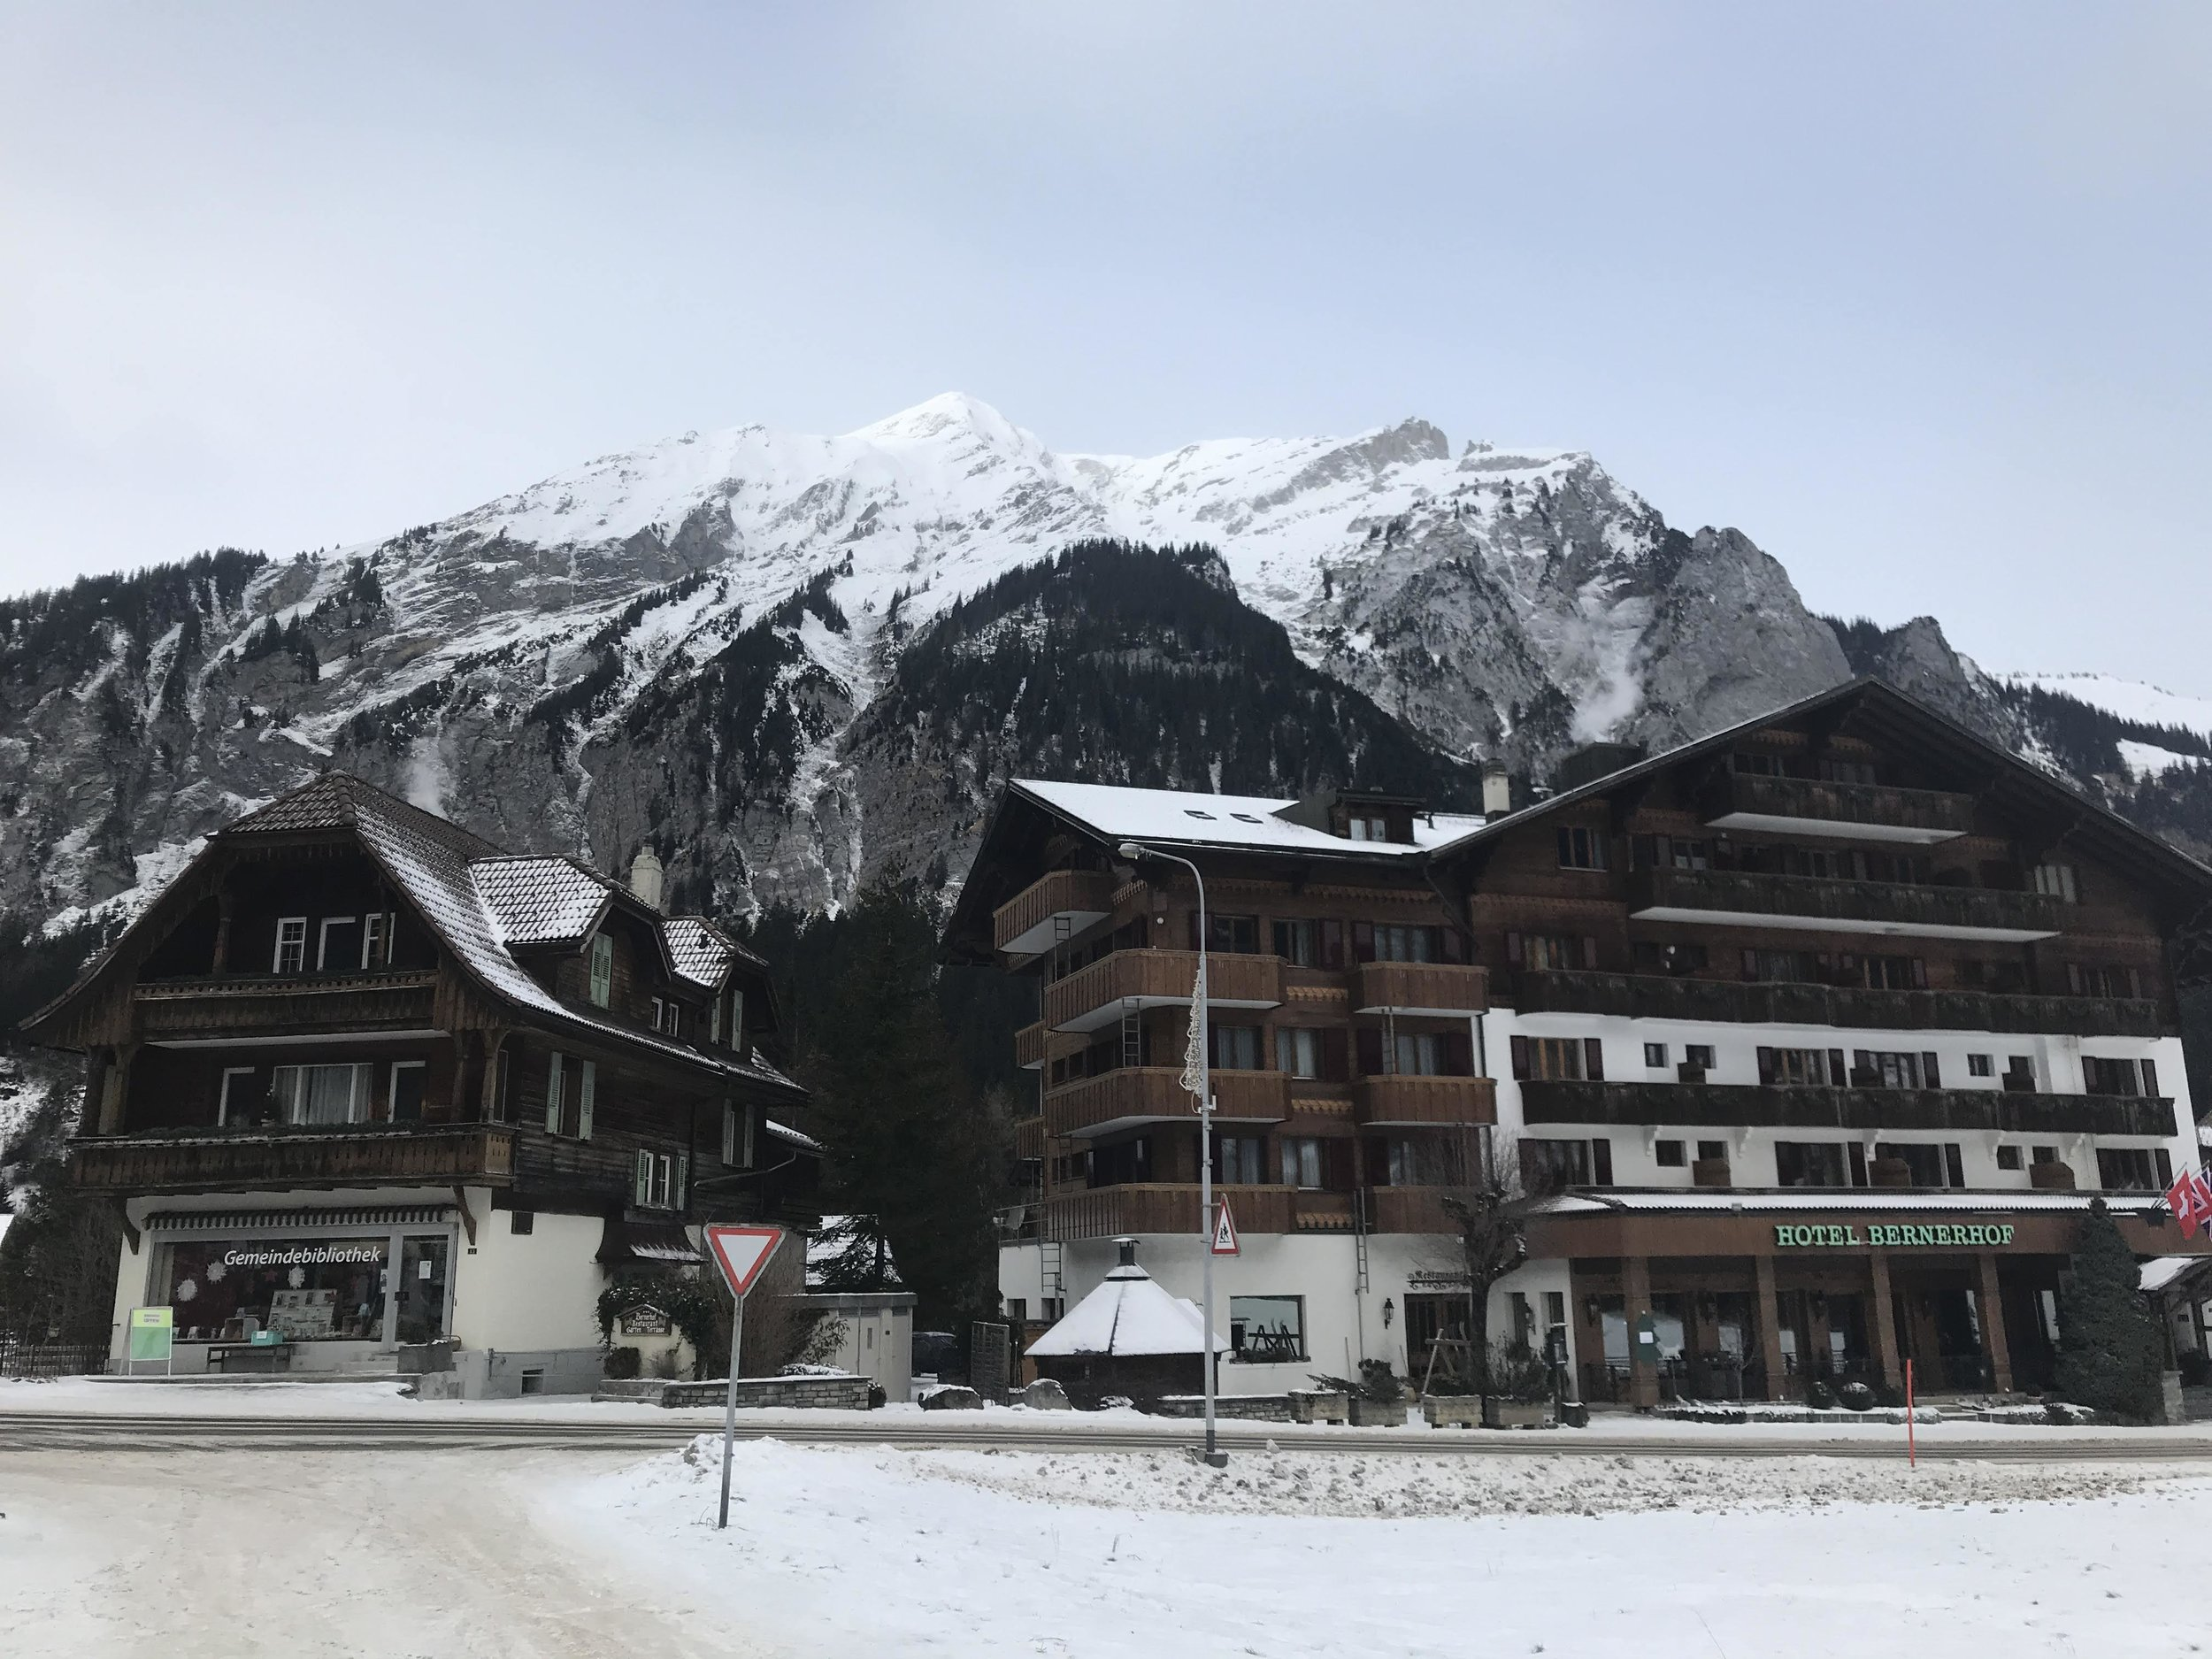 The small town of Kandersteg.